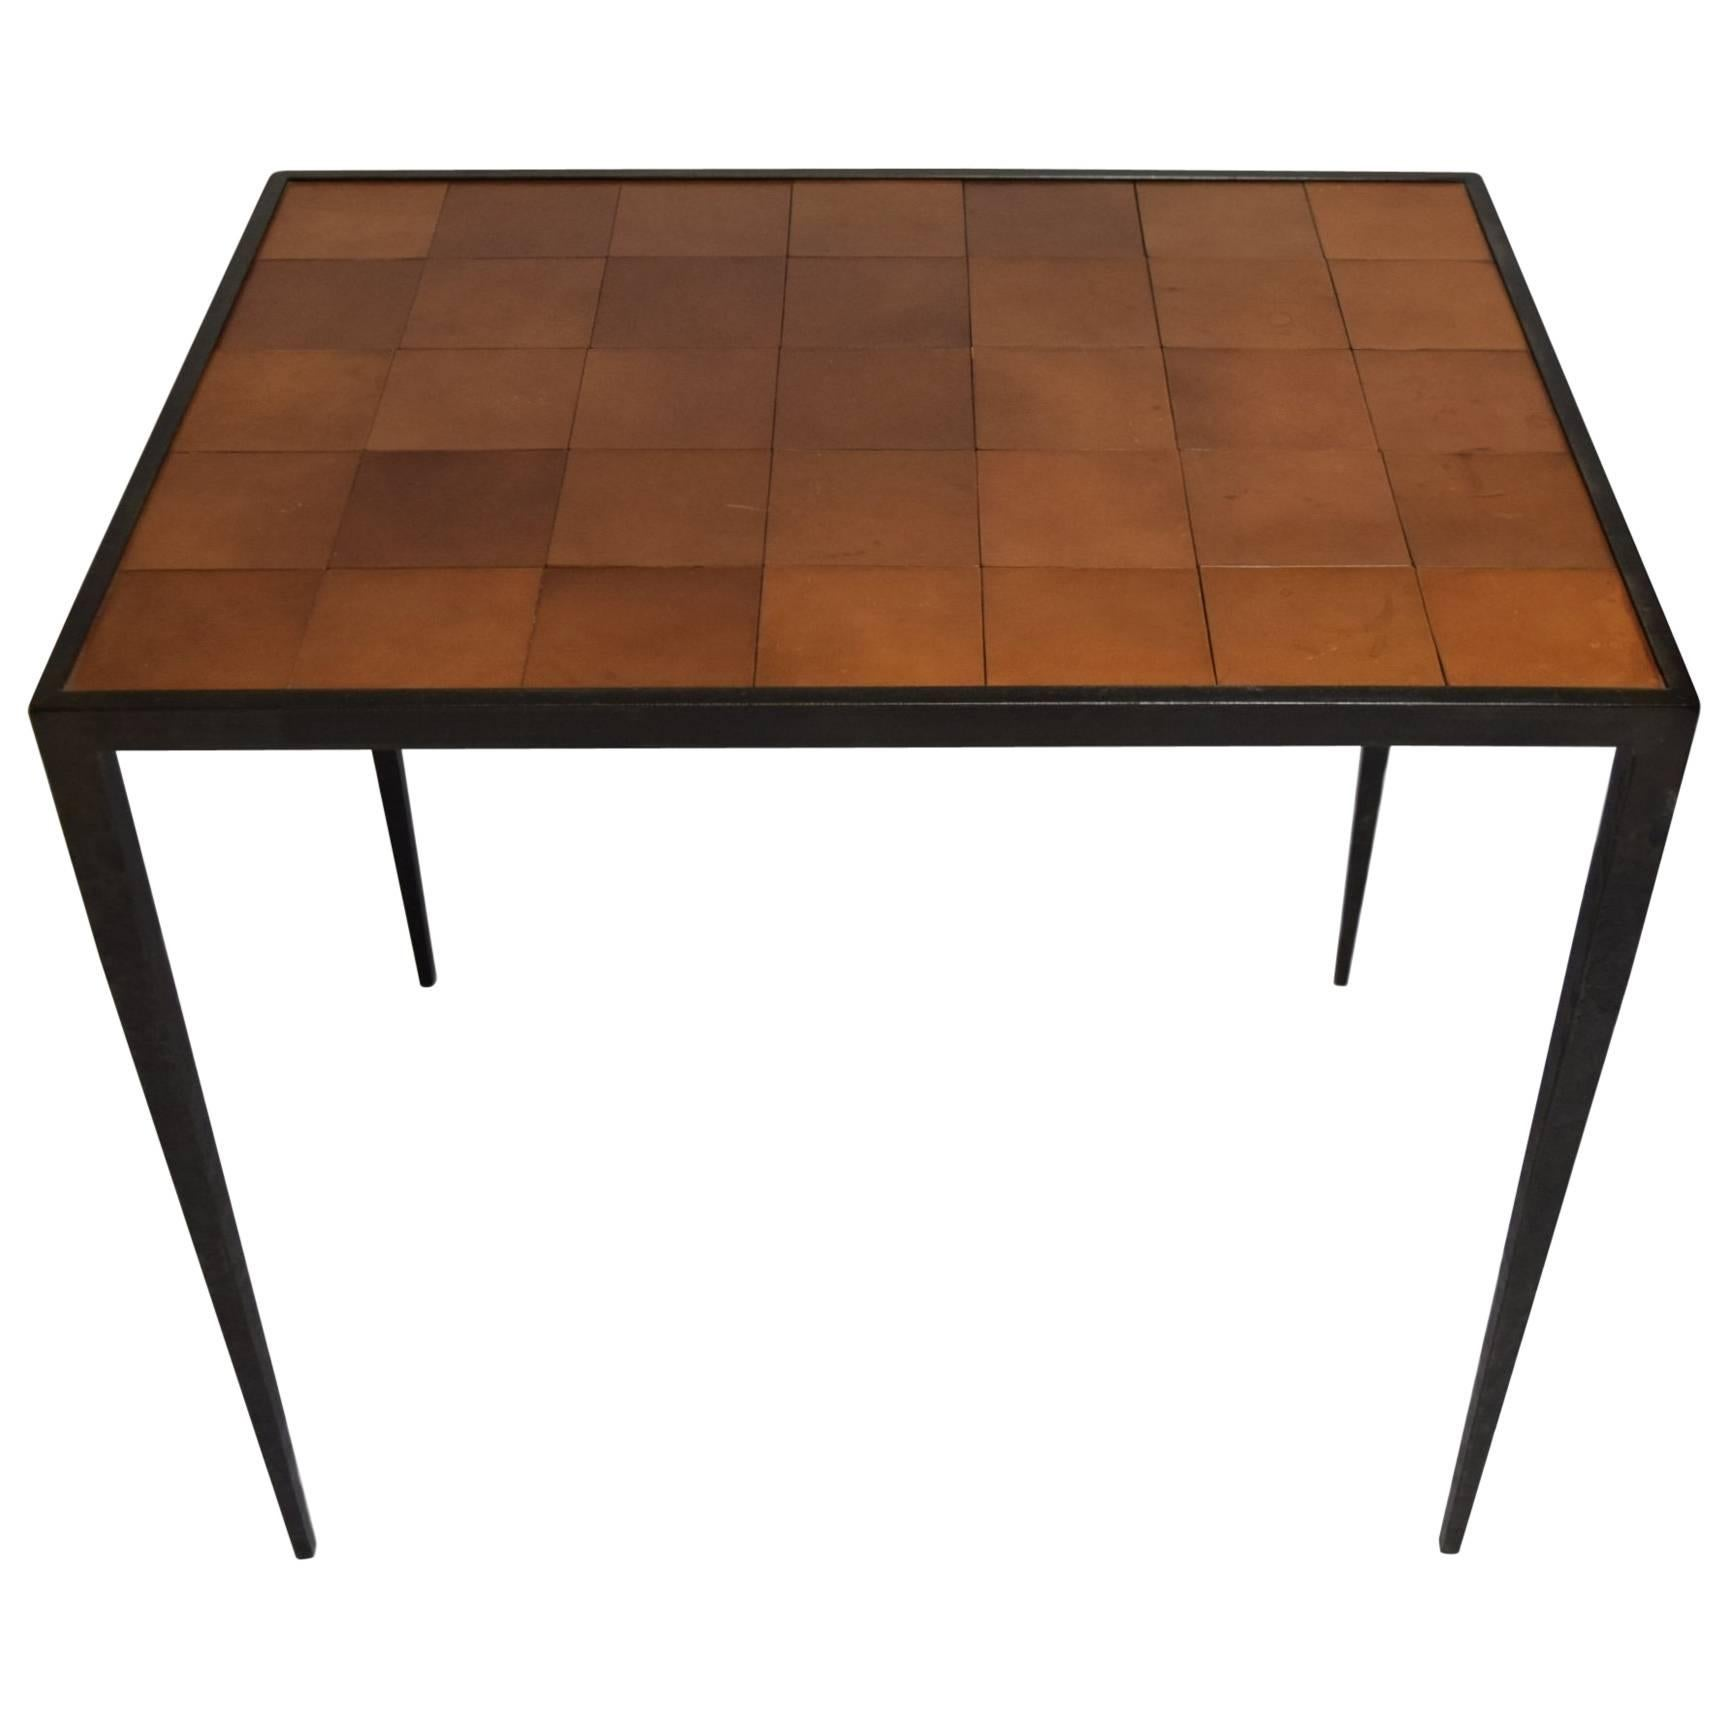 Table after Jean Michel Frank in Hammered Bronze and Leather, C. 1960